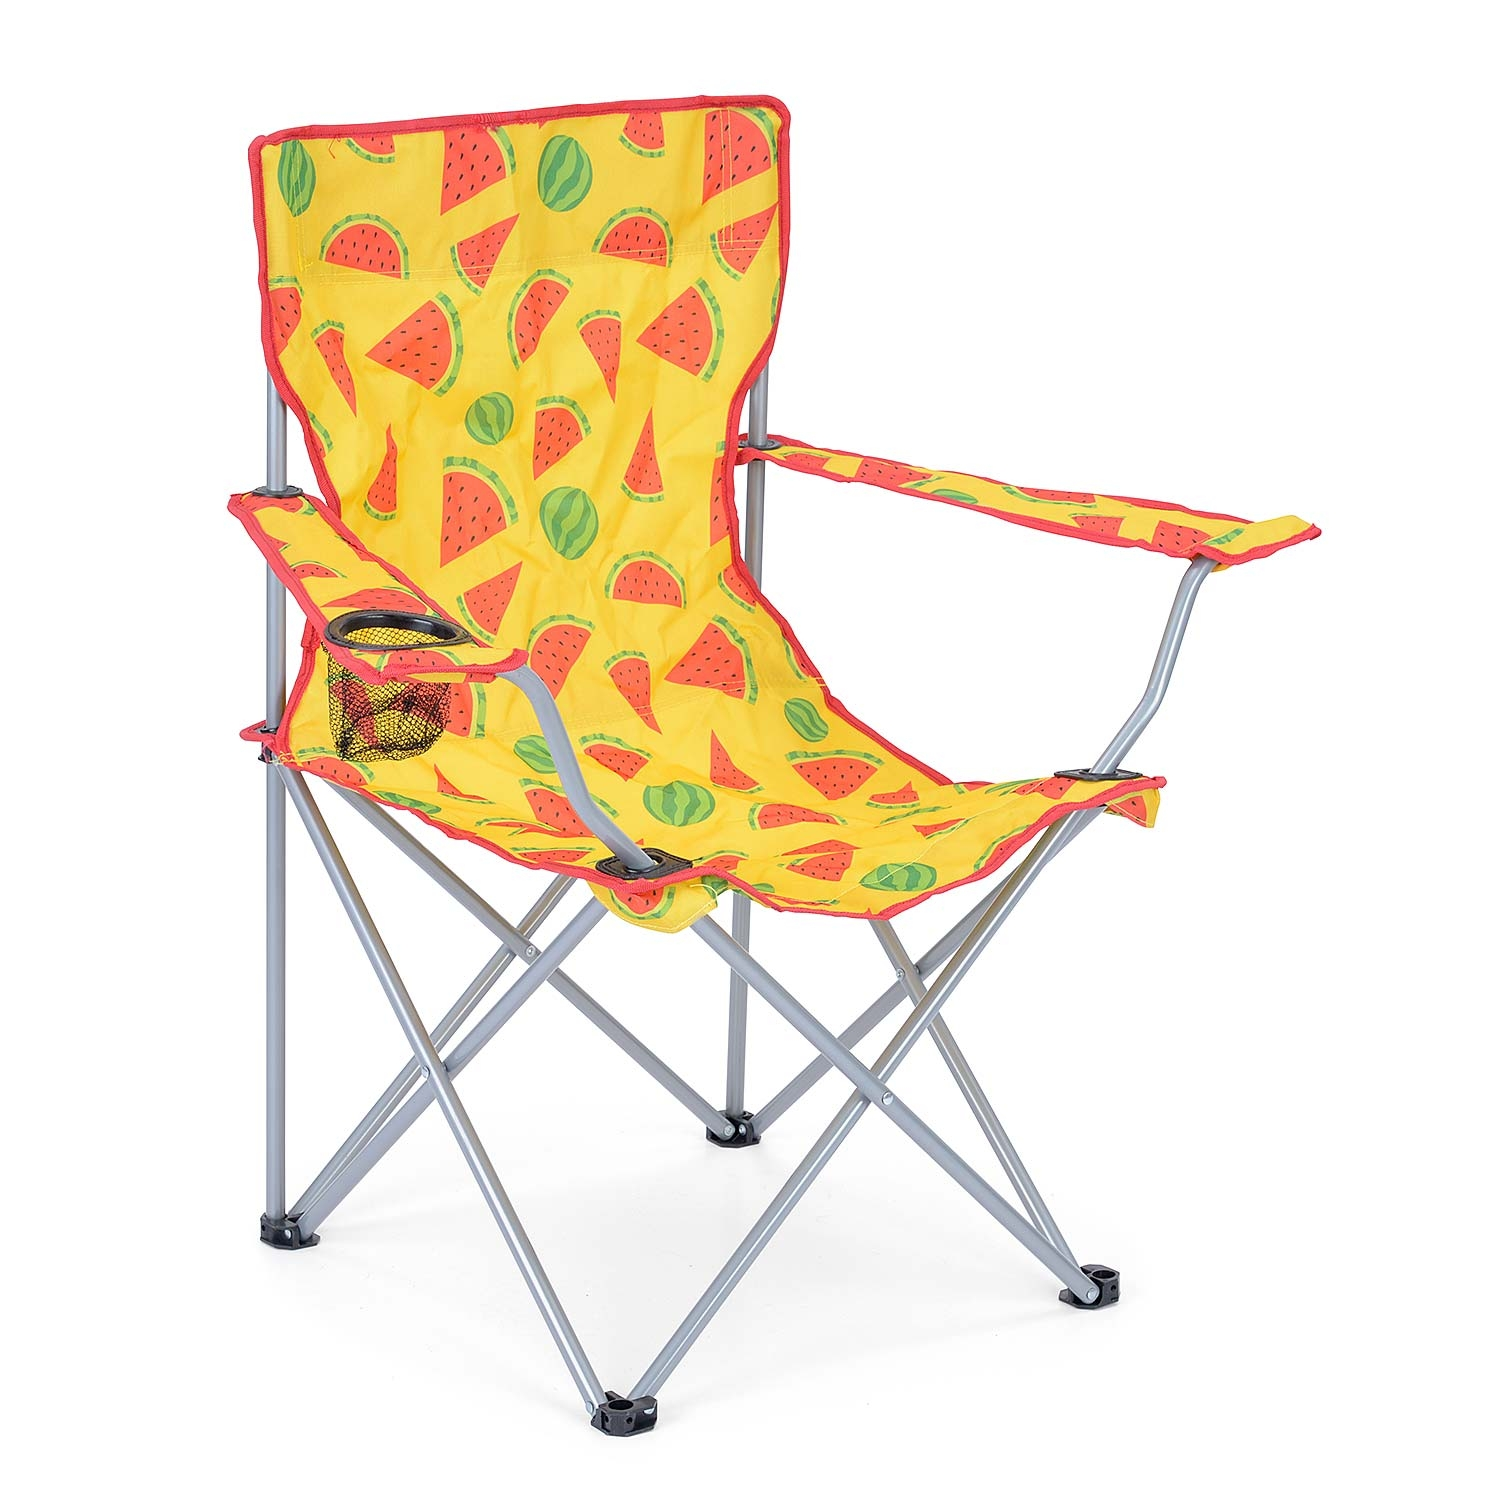 Trail Watermelon Camping Chair - Yellow